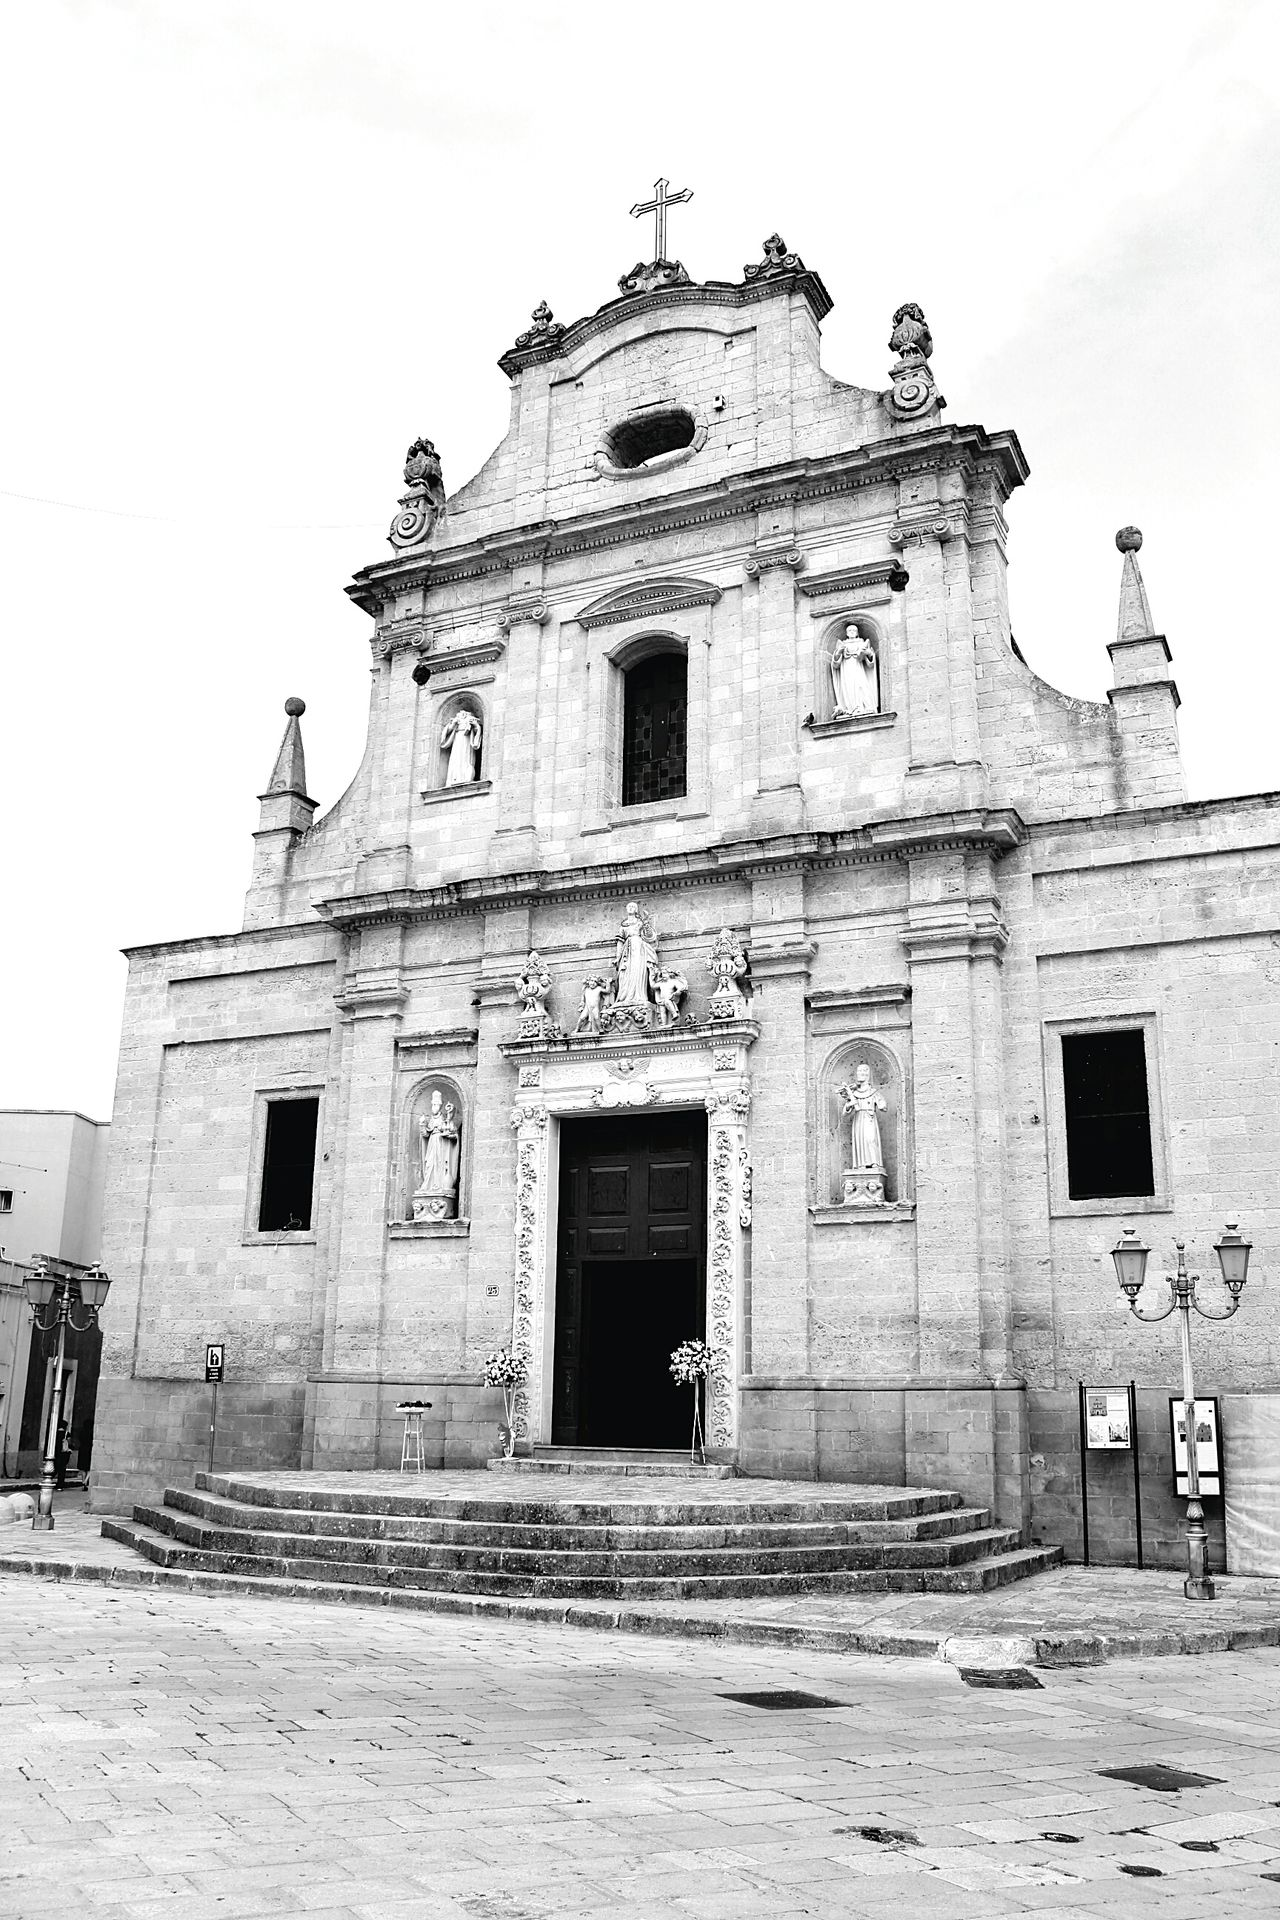 Vertical Architecture Building Exterior Sky Built Structure Outdoors History Travel Destinations No People Day Italia Europa Horizontal Salicesalentino Lecce - Italia Salento Puglia Town Entrance Monochrome Photography Façade Historic Creativity Arte Art